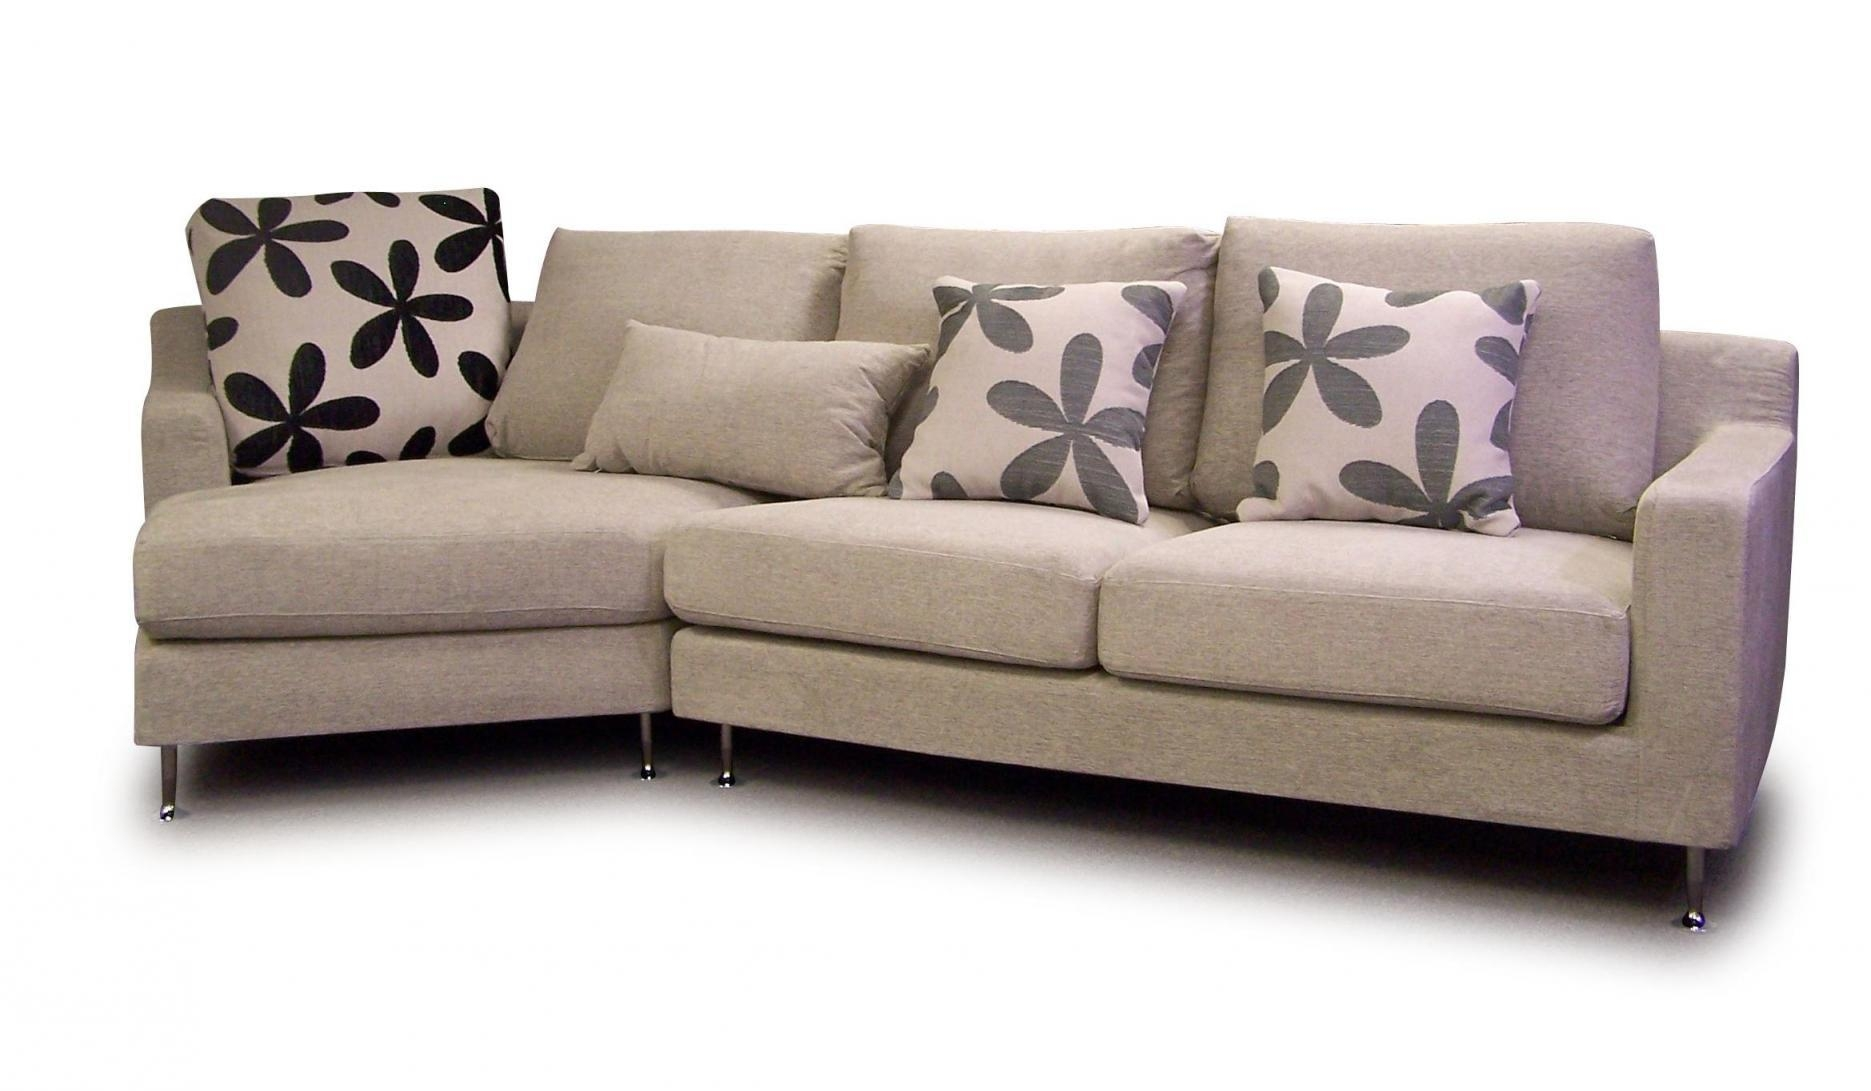 20 photos cool cheap sofas sofa ideas for Affordable couches for sale